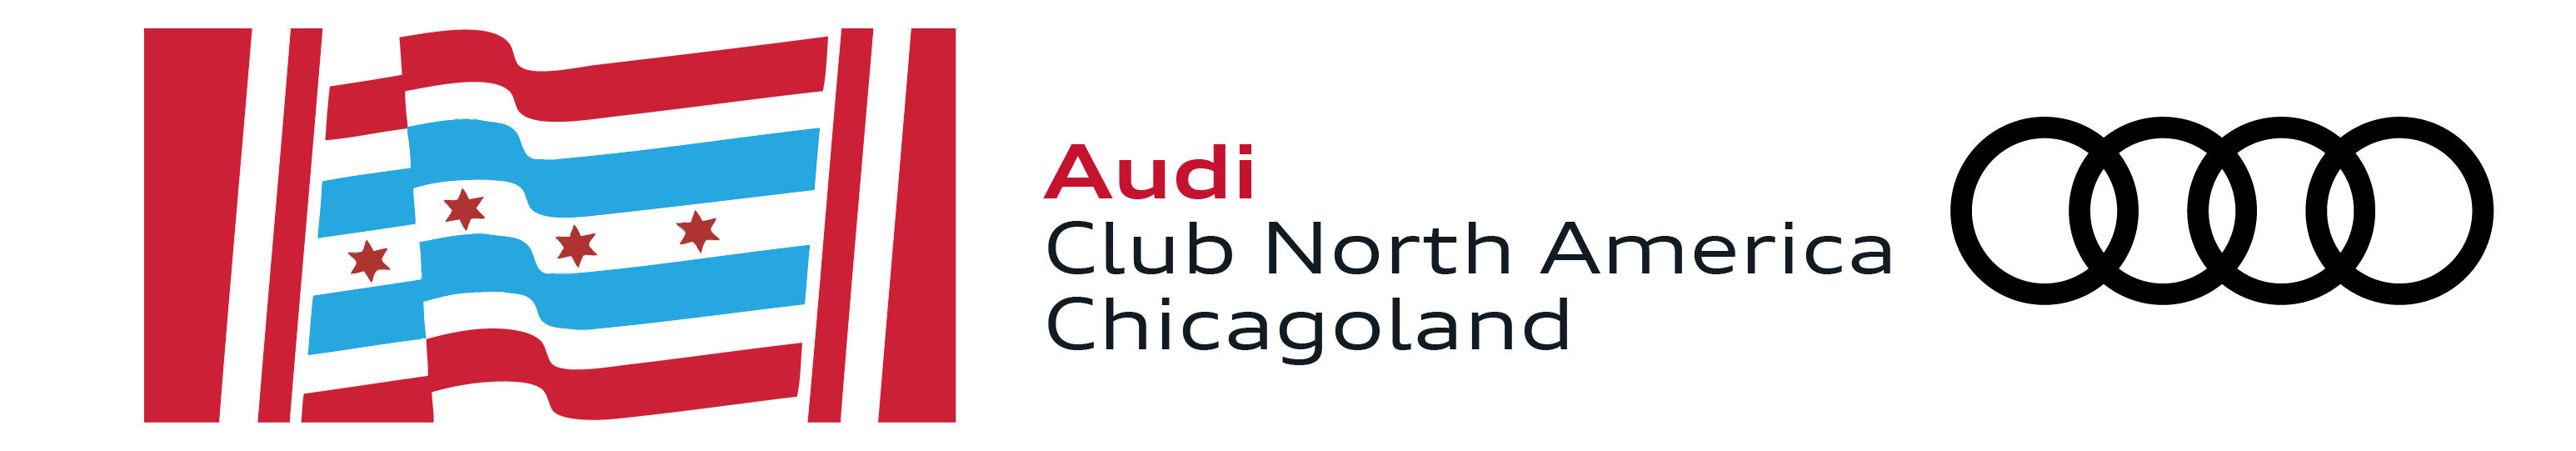 Audi Club North America Chicagoland